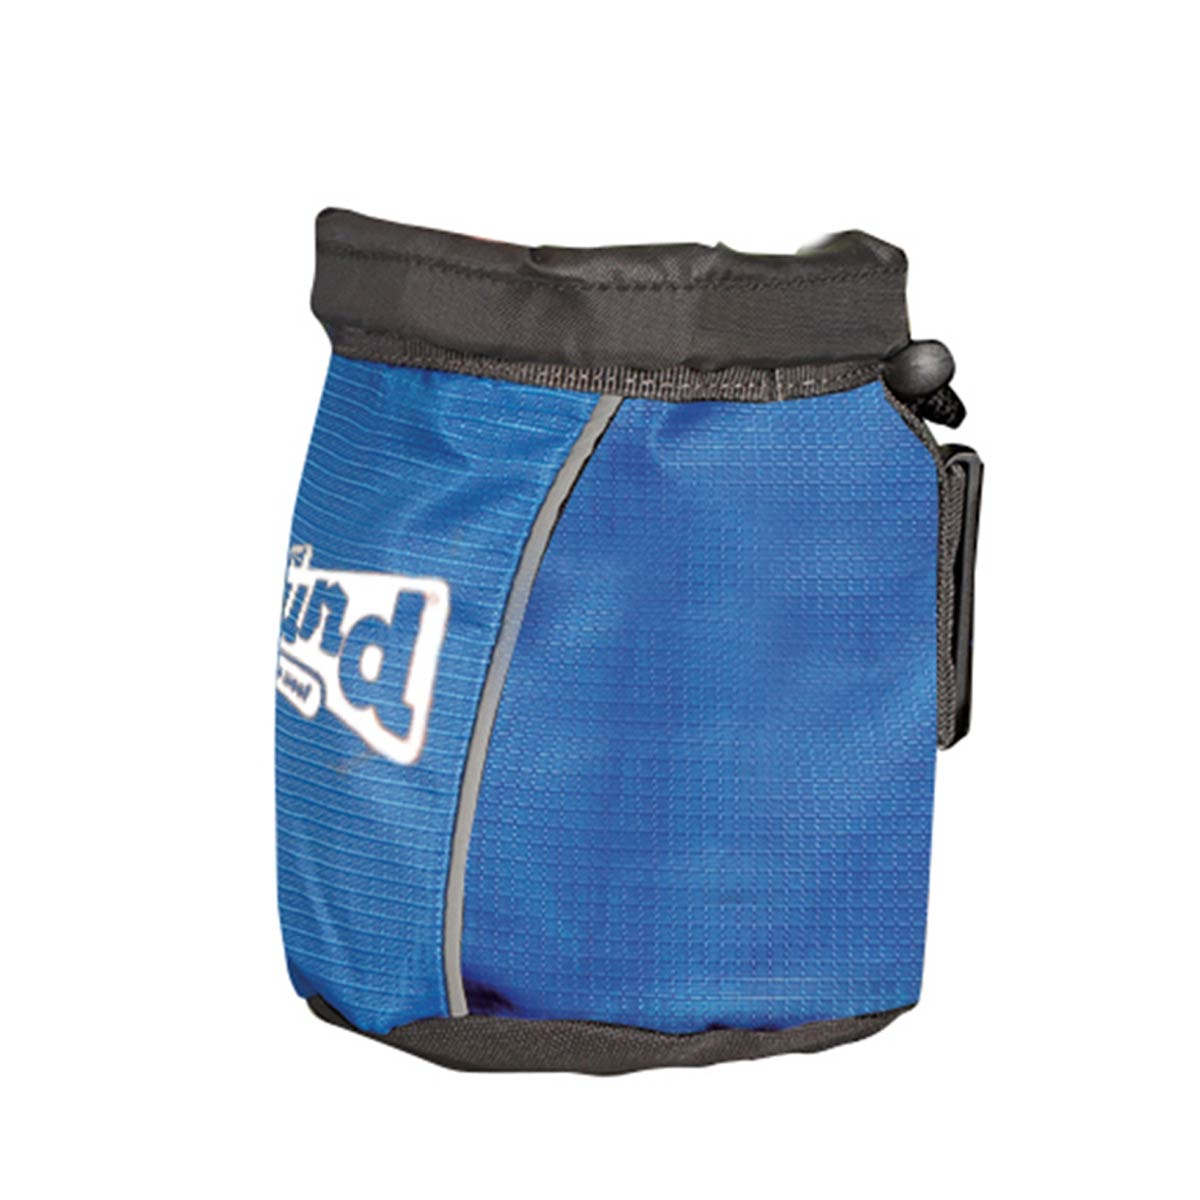 Outward Hound Treat 'N Ball Bag - Blue and Black